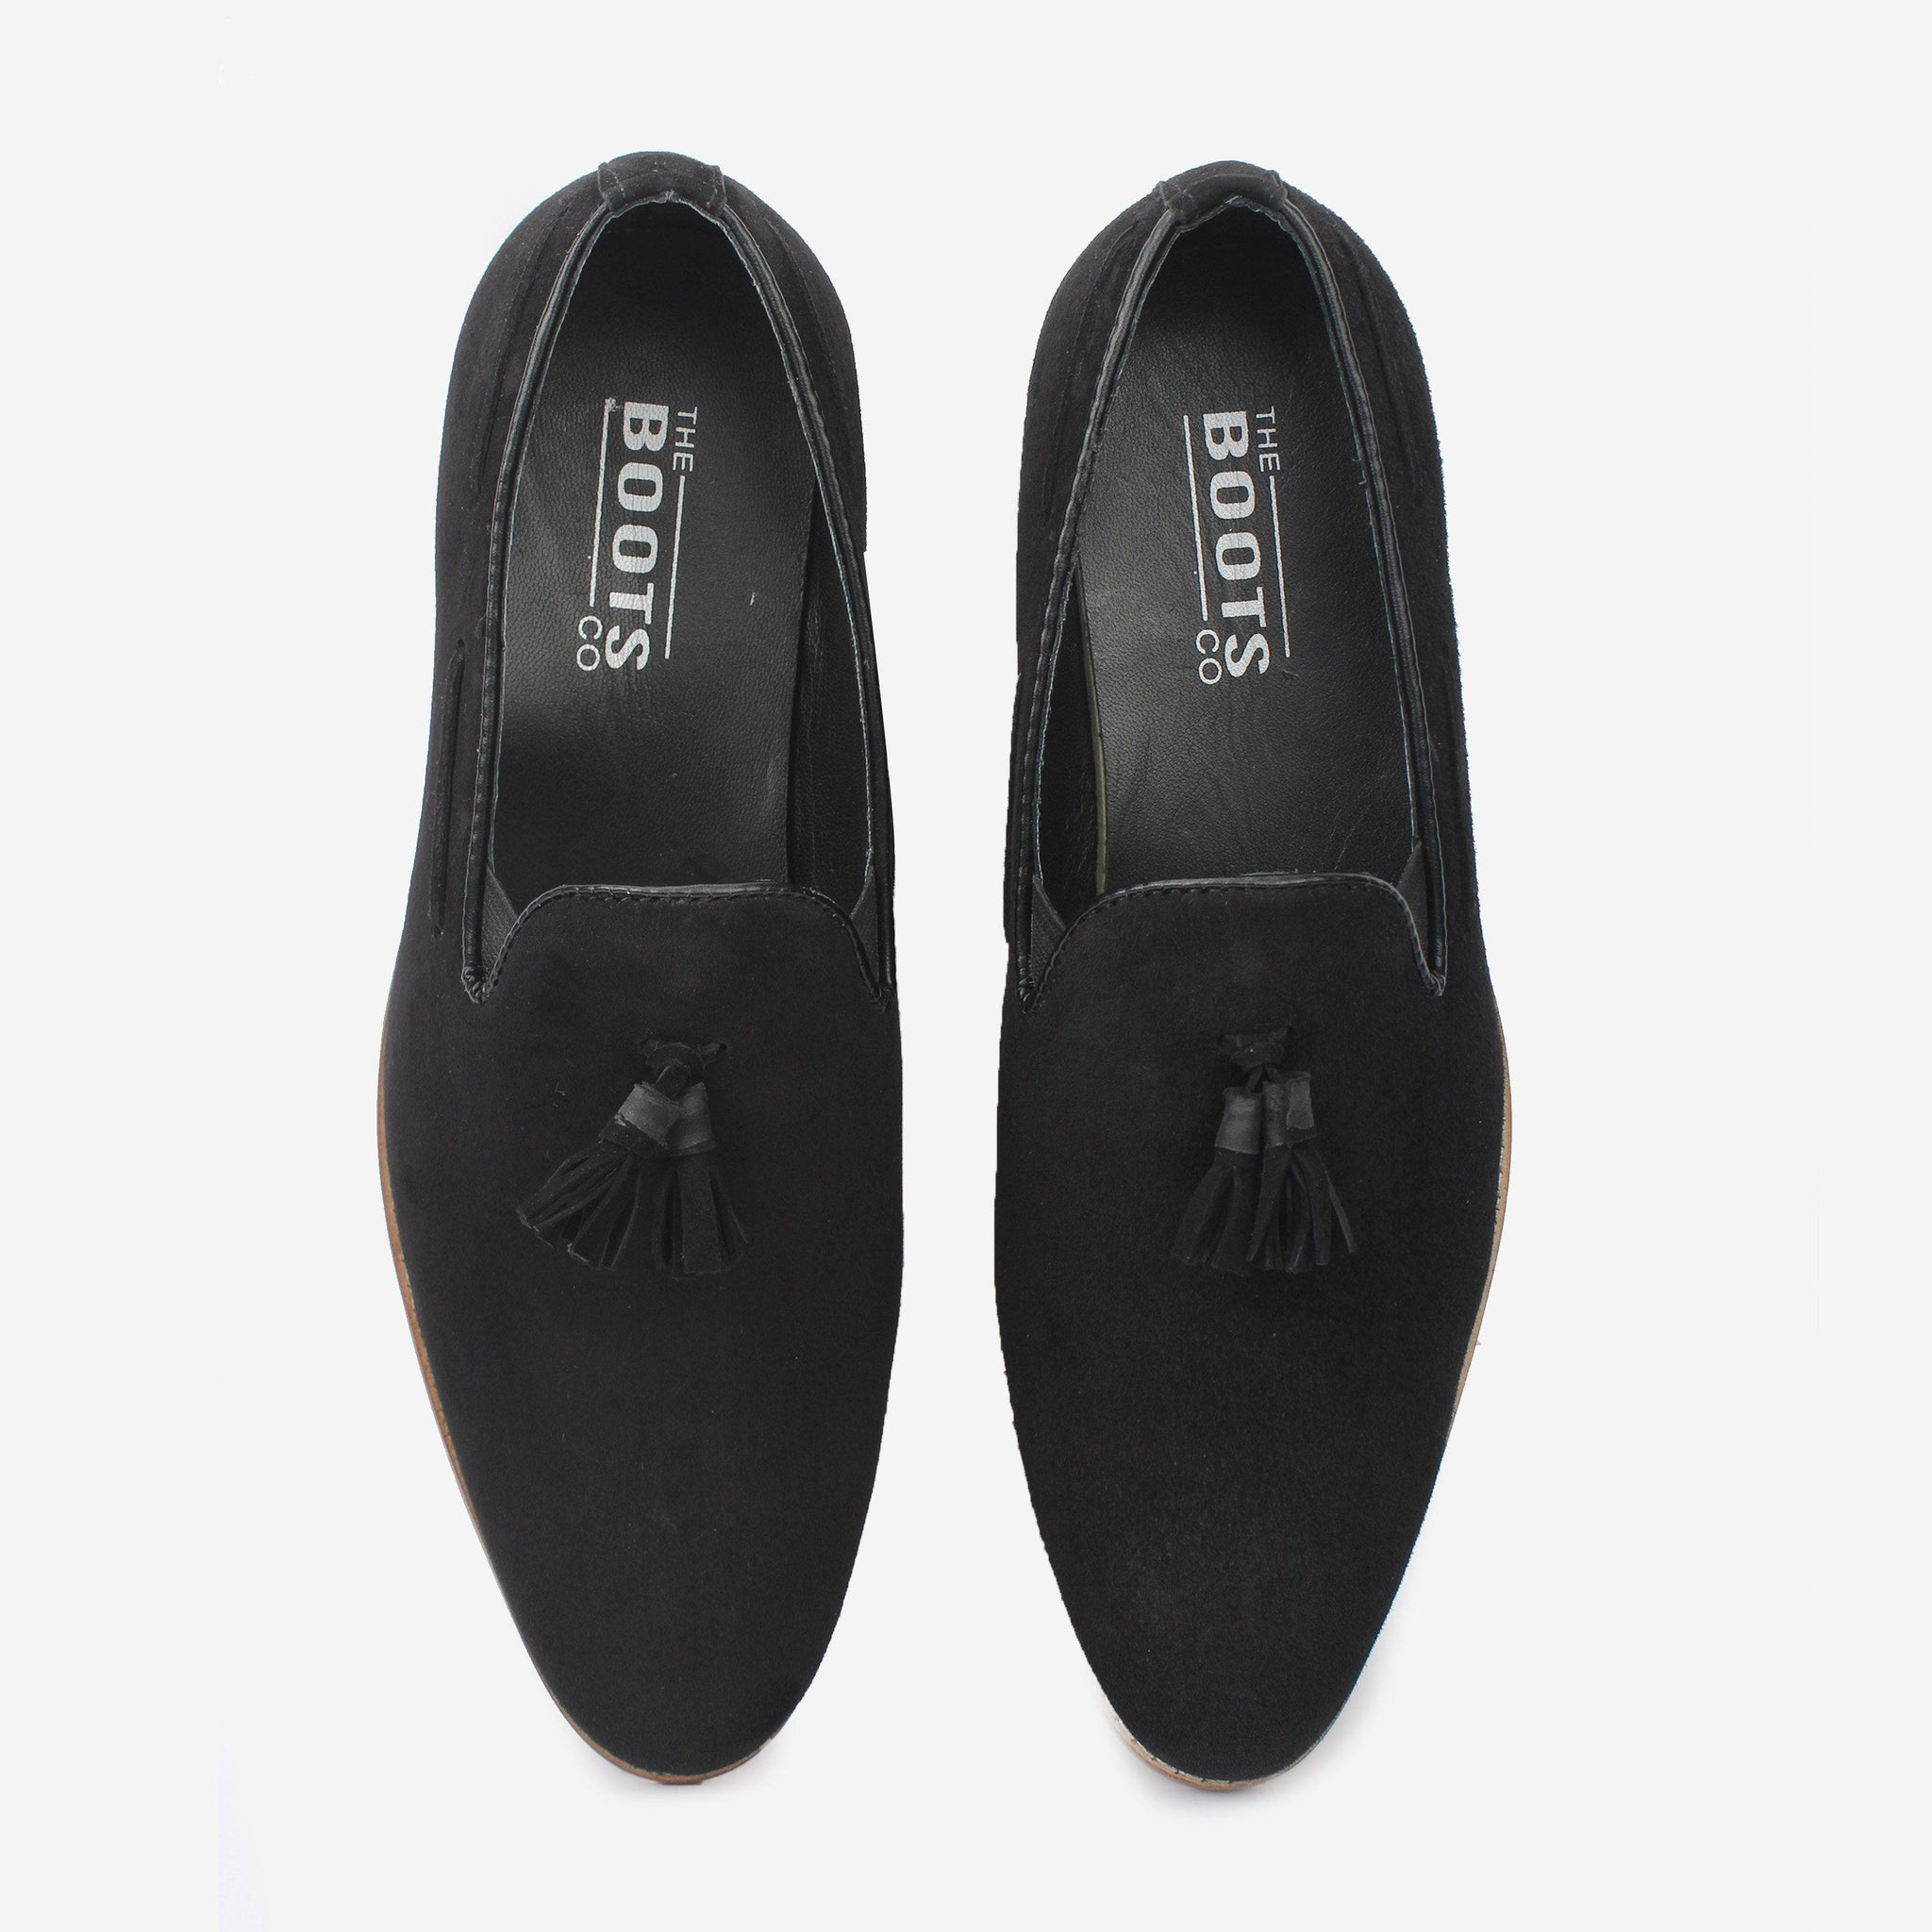 Jericho Loafer Black Thebootsco